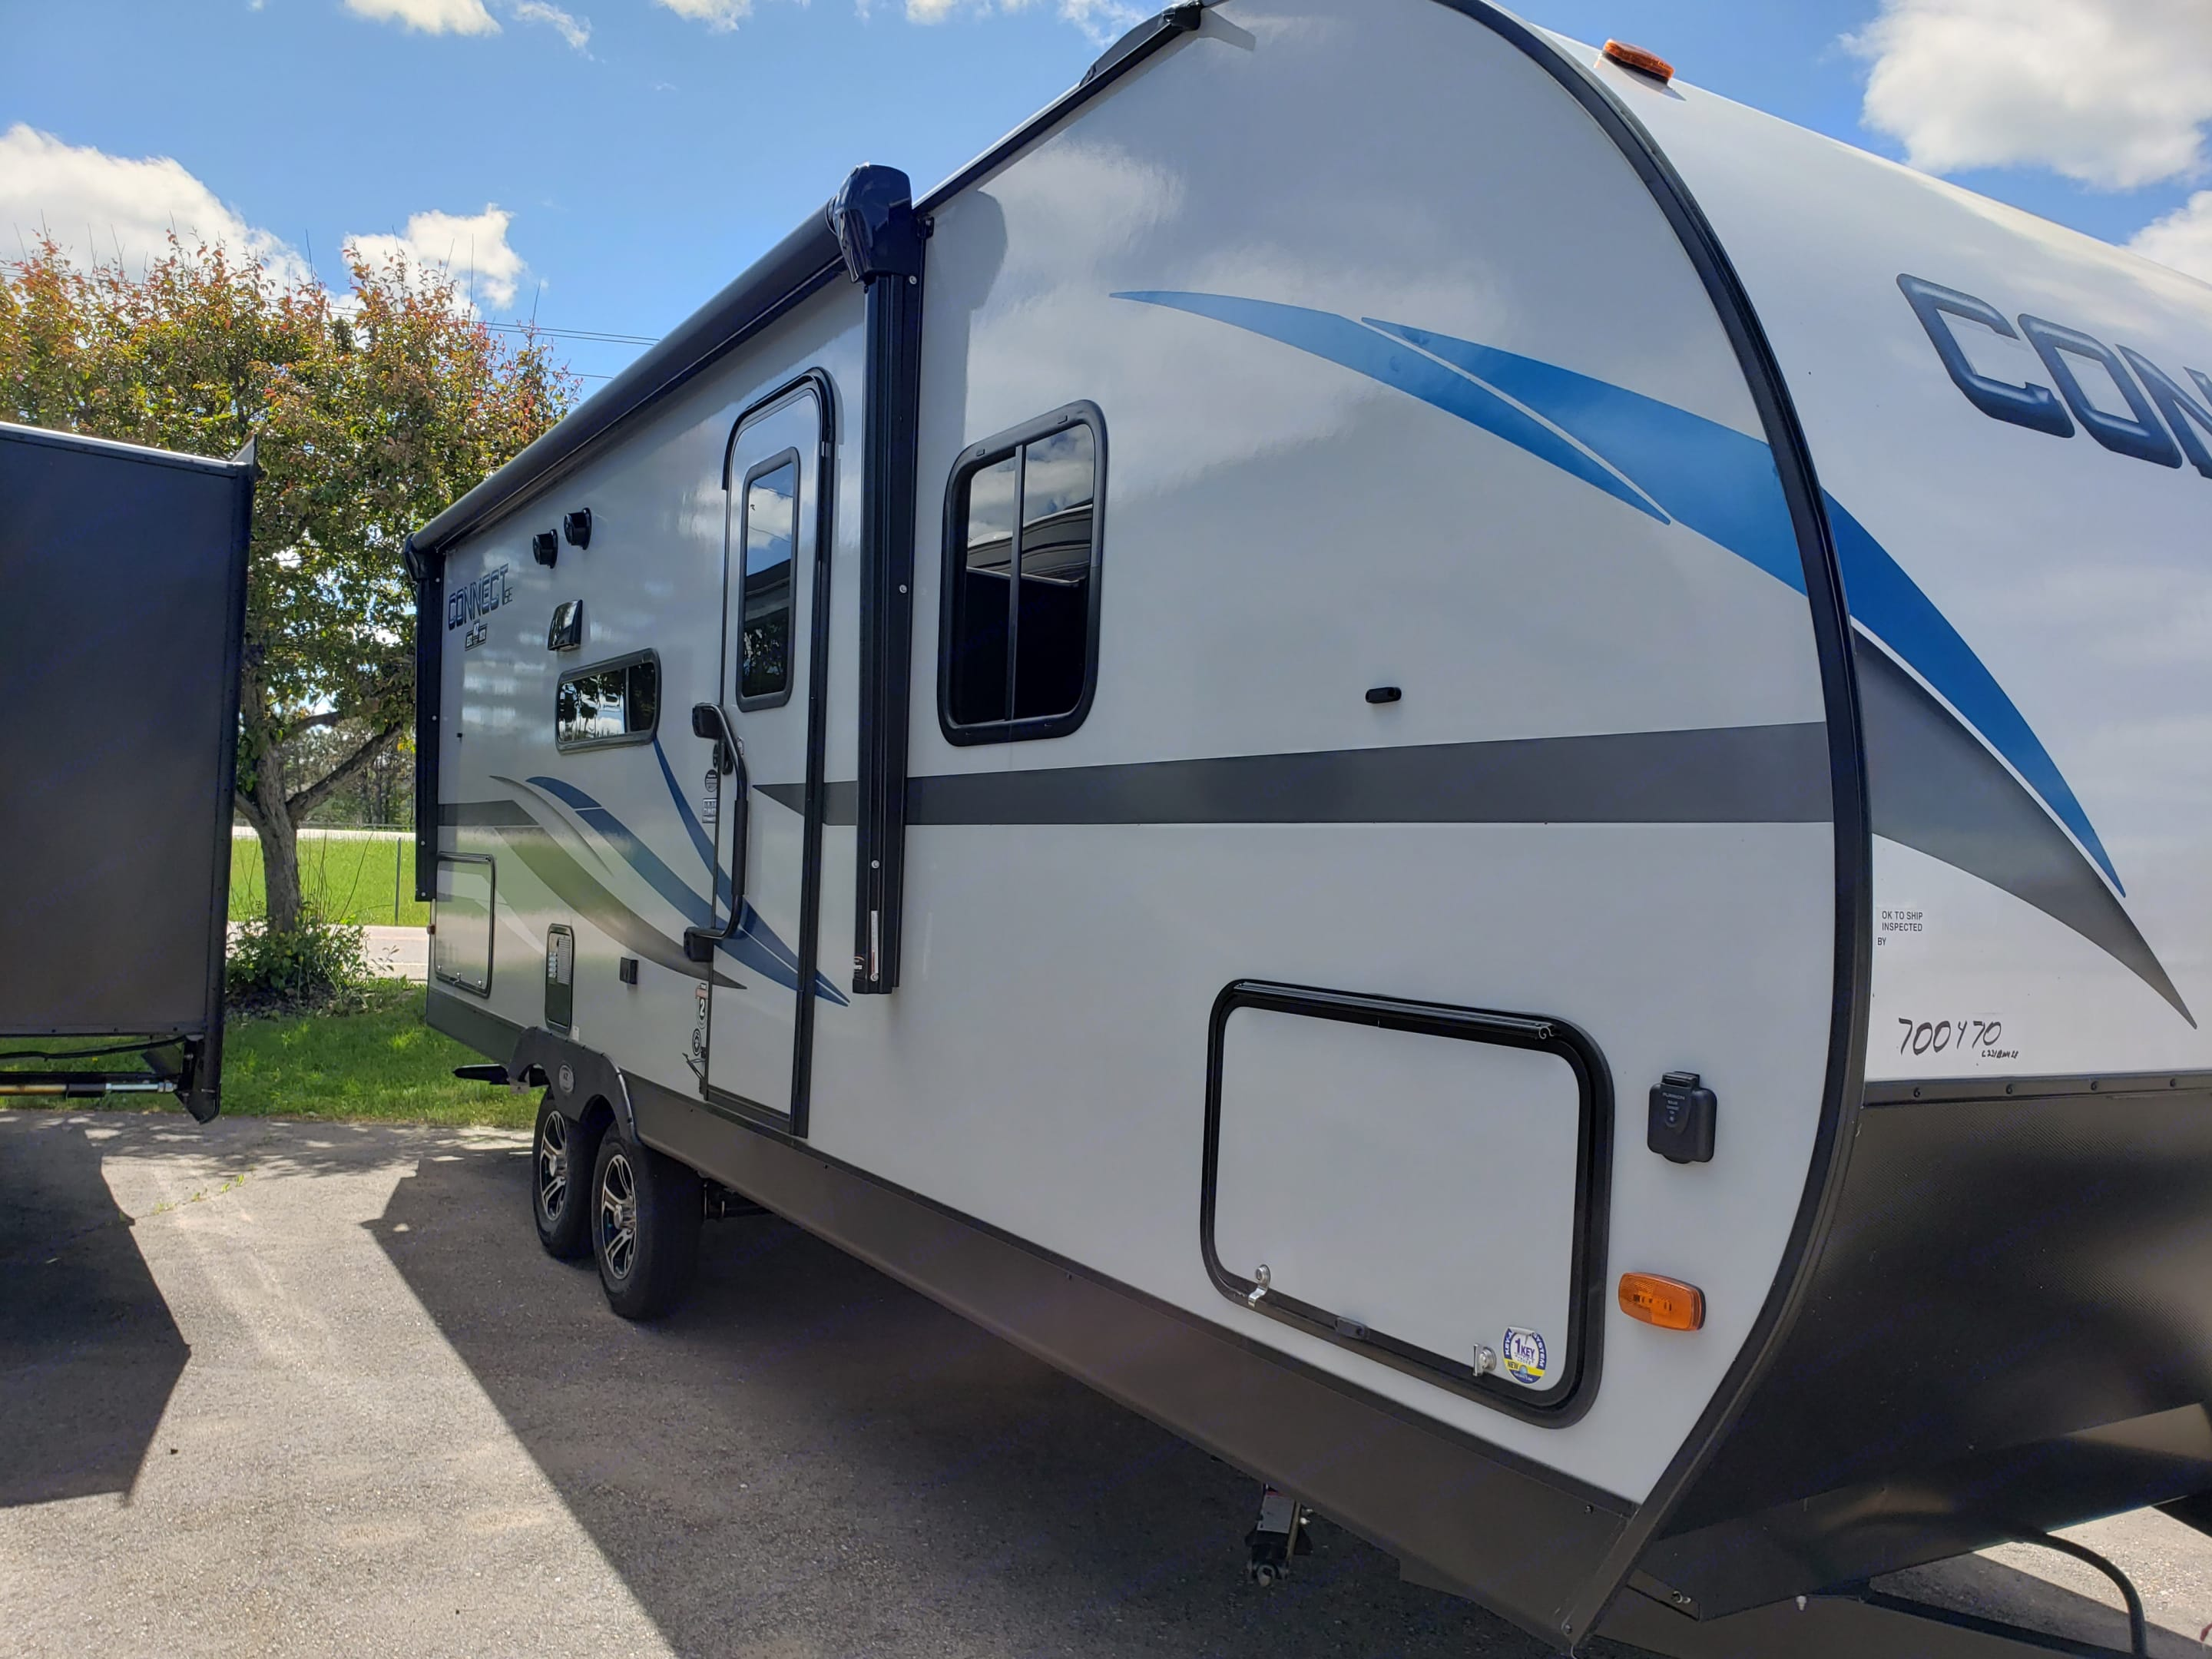 Large storage area, awning, dual axles for stability. . Other Other 2020